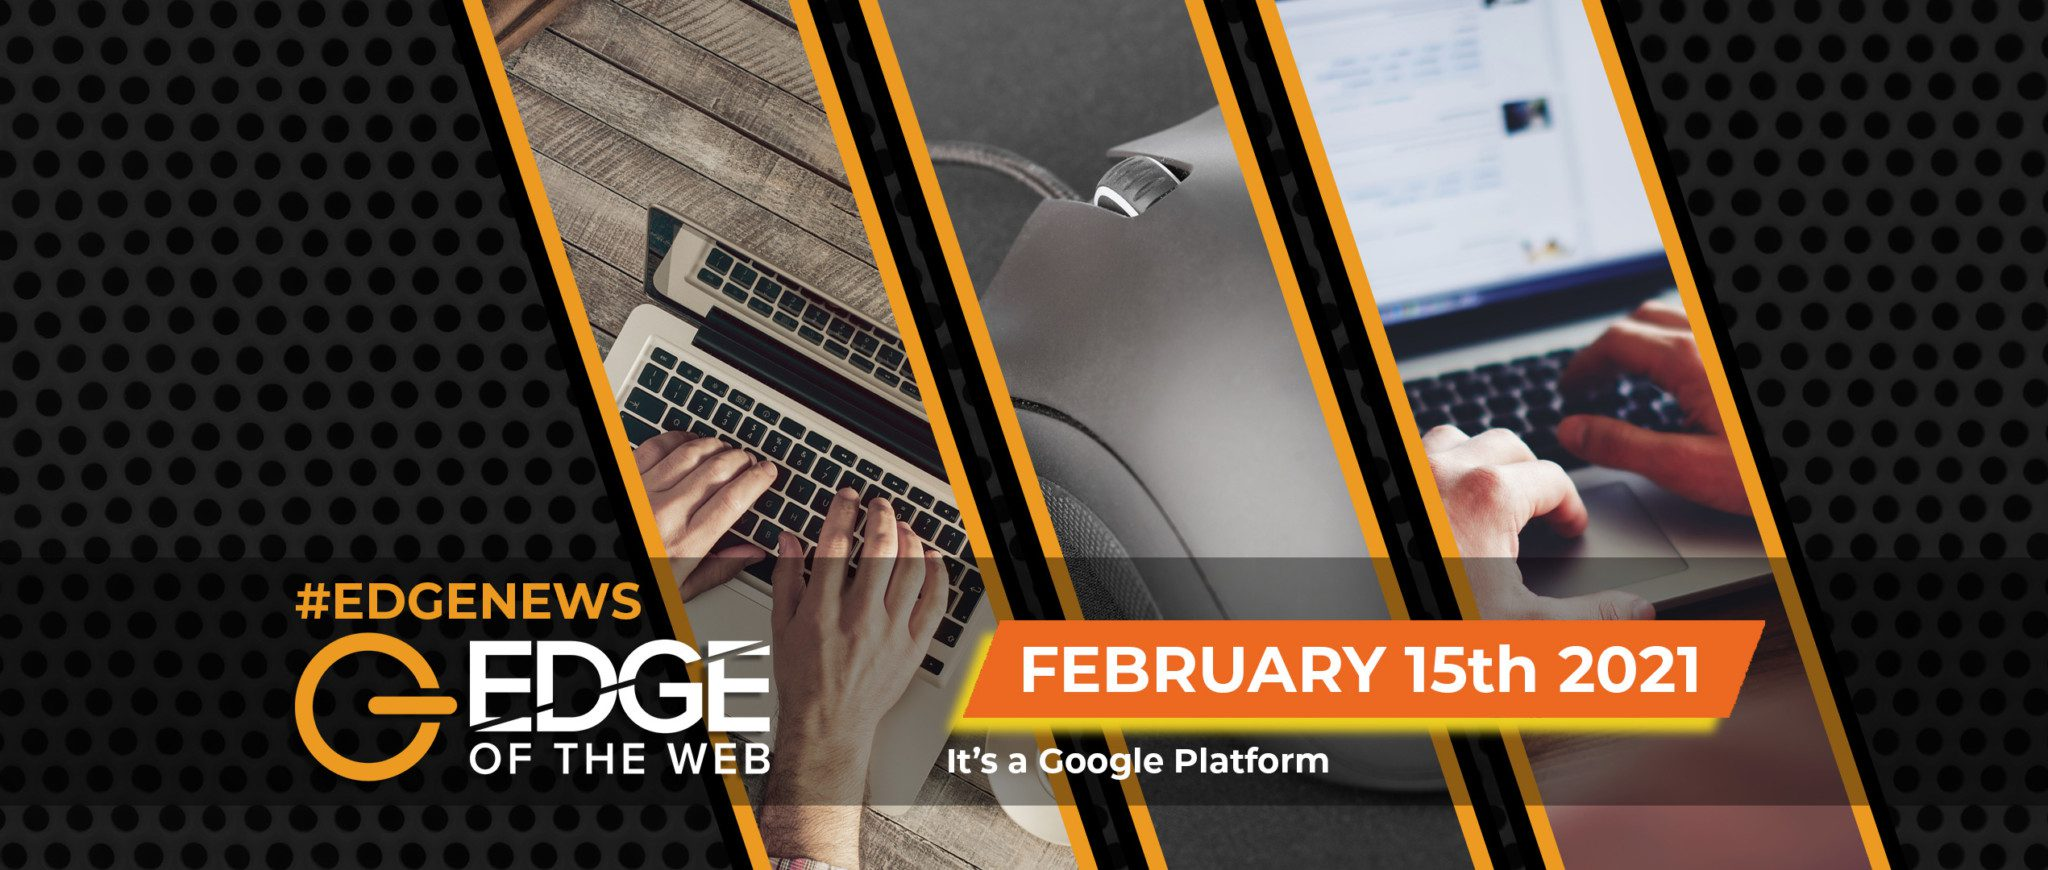 EP394 EDGE of the Web